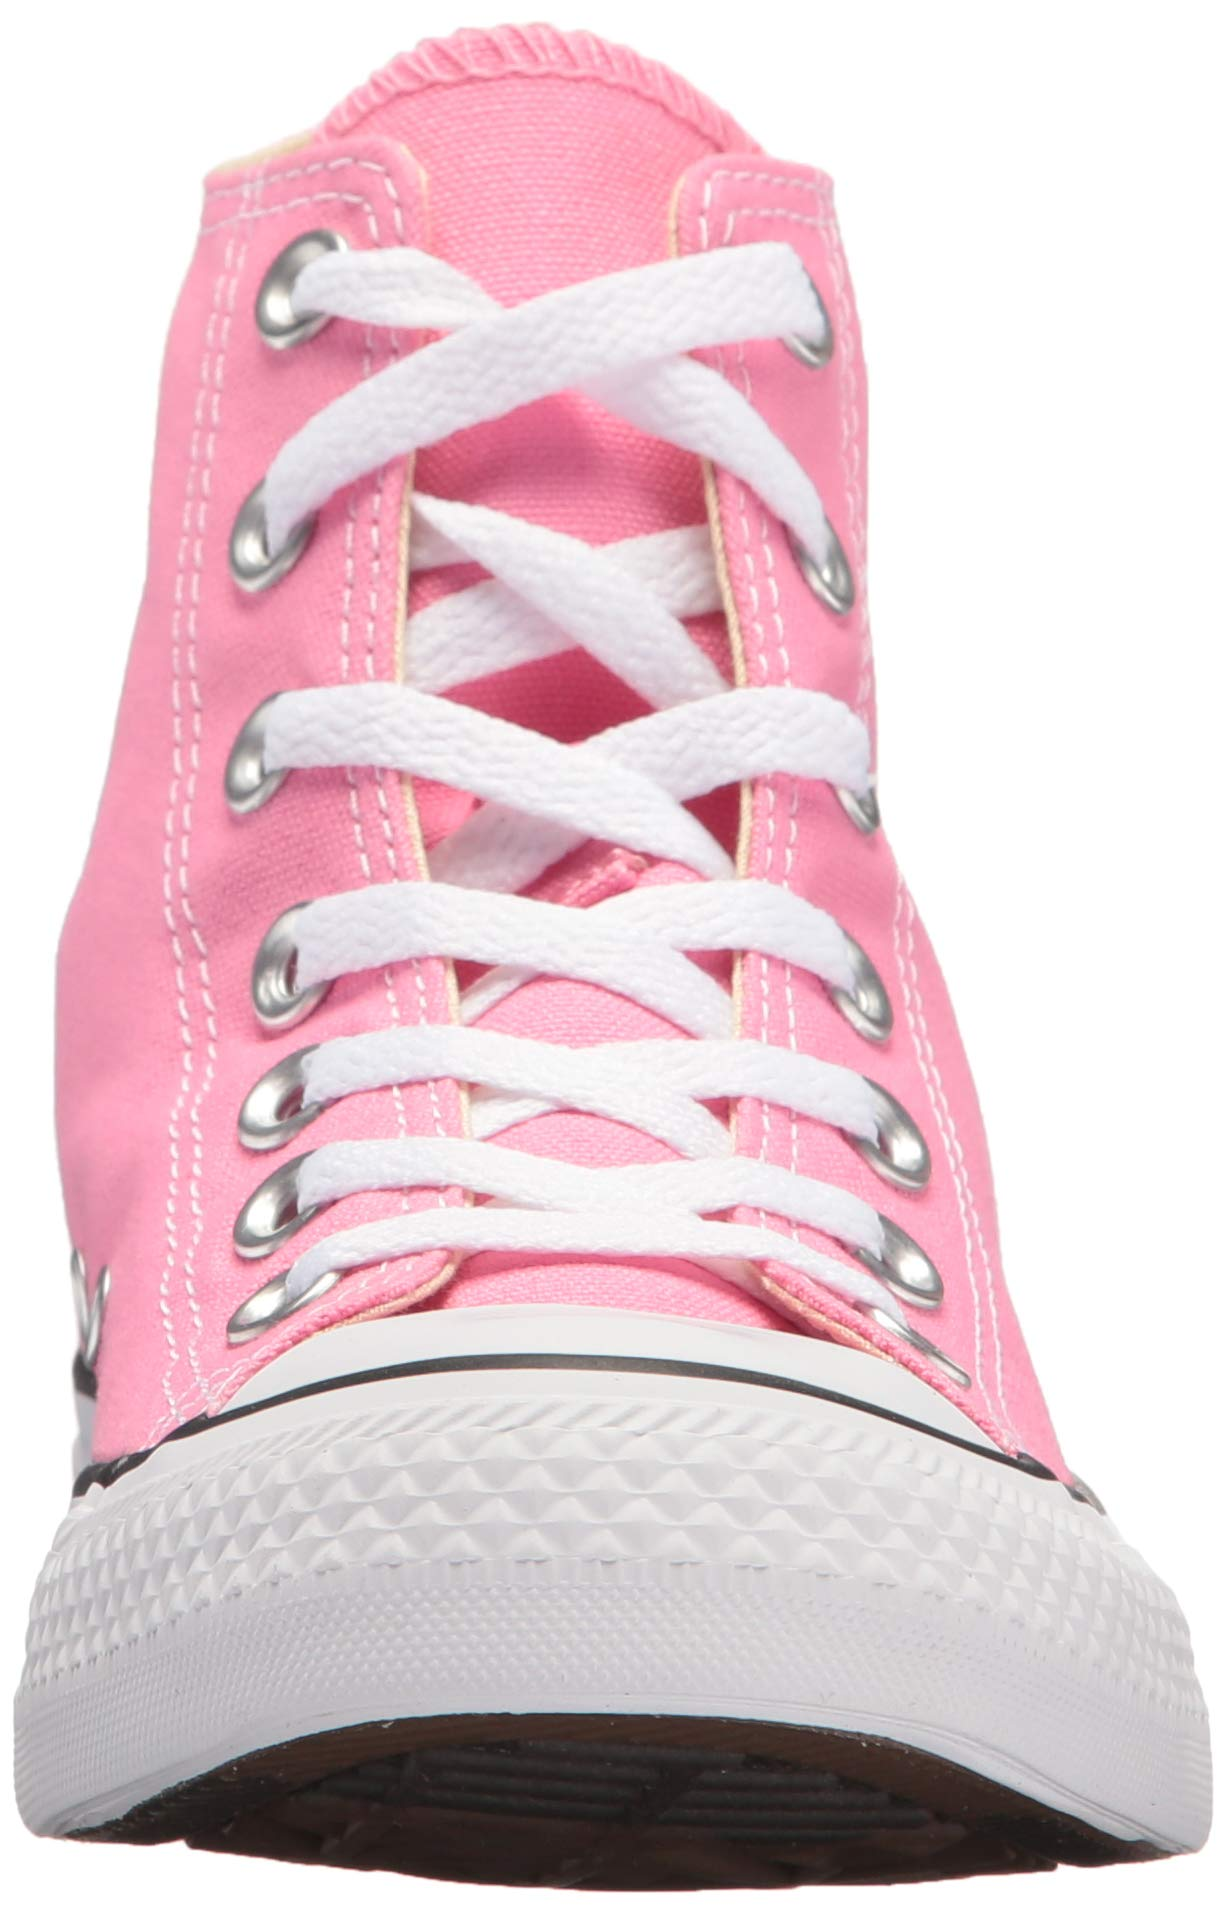 Chuck Taylor All Star Canvas High Top, Pink, 4 M US by Converse (Image #4)